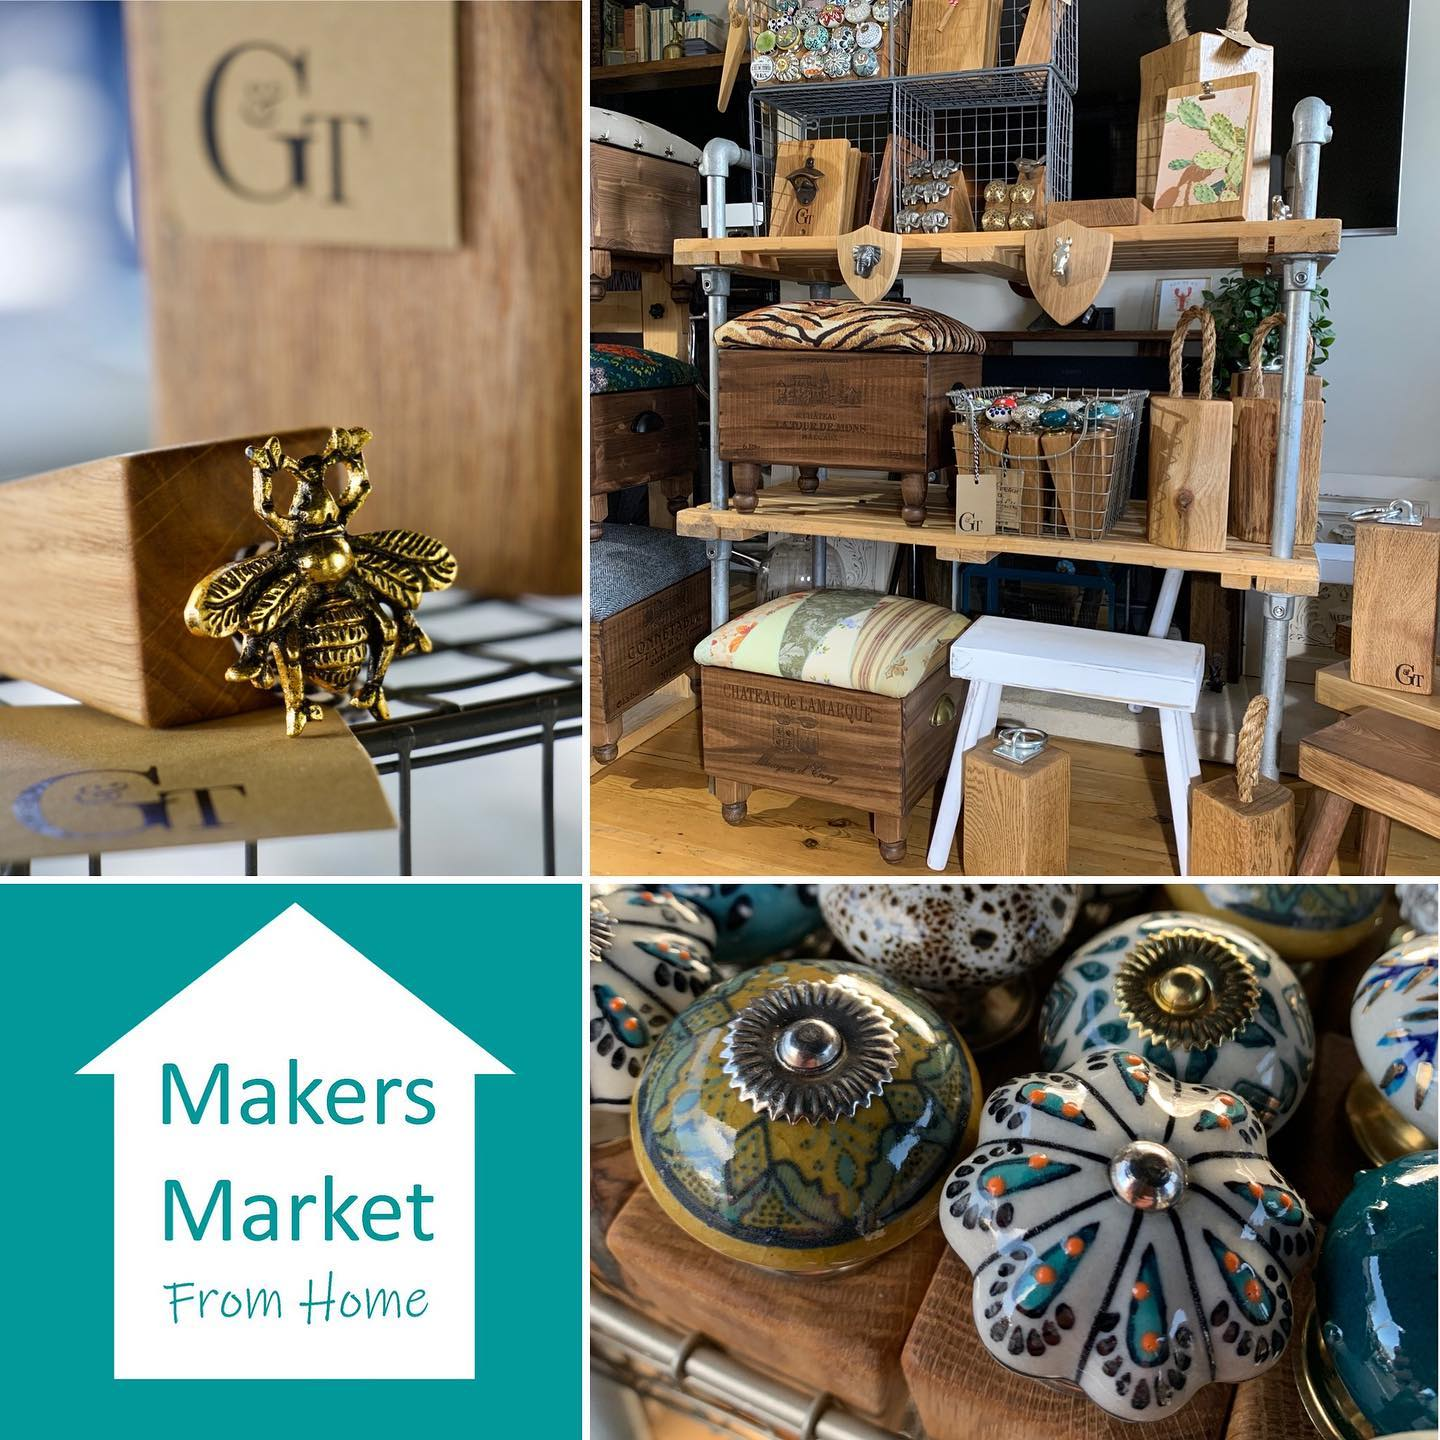 Join @makersmarketfromhome on Saturday between 10am and 3pm where you can watch a live feed of independent makers introducing some of their handcrafted products and chatting about what they do.We'll be starting the day over on our feed with a small introduction to our stall and we will post videos and photos throughout the day. We're excited to be a part of this market again, it's all about celebrating independent makers and supporting them during this challenging time. It's also a great opportunity to follow new people and maybe even do a little shopping... all from the comfort of your home. Follow the hashtag #makersmarketfromhome to see posts from everyone involved....#stayathome #makersgonnamake #handmade #workingfromhome #craft #homewares #independentbusiness #shopsmall #shophamdmade #virtualmarket #home #gingerandtweed